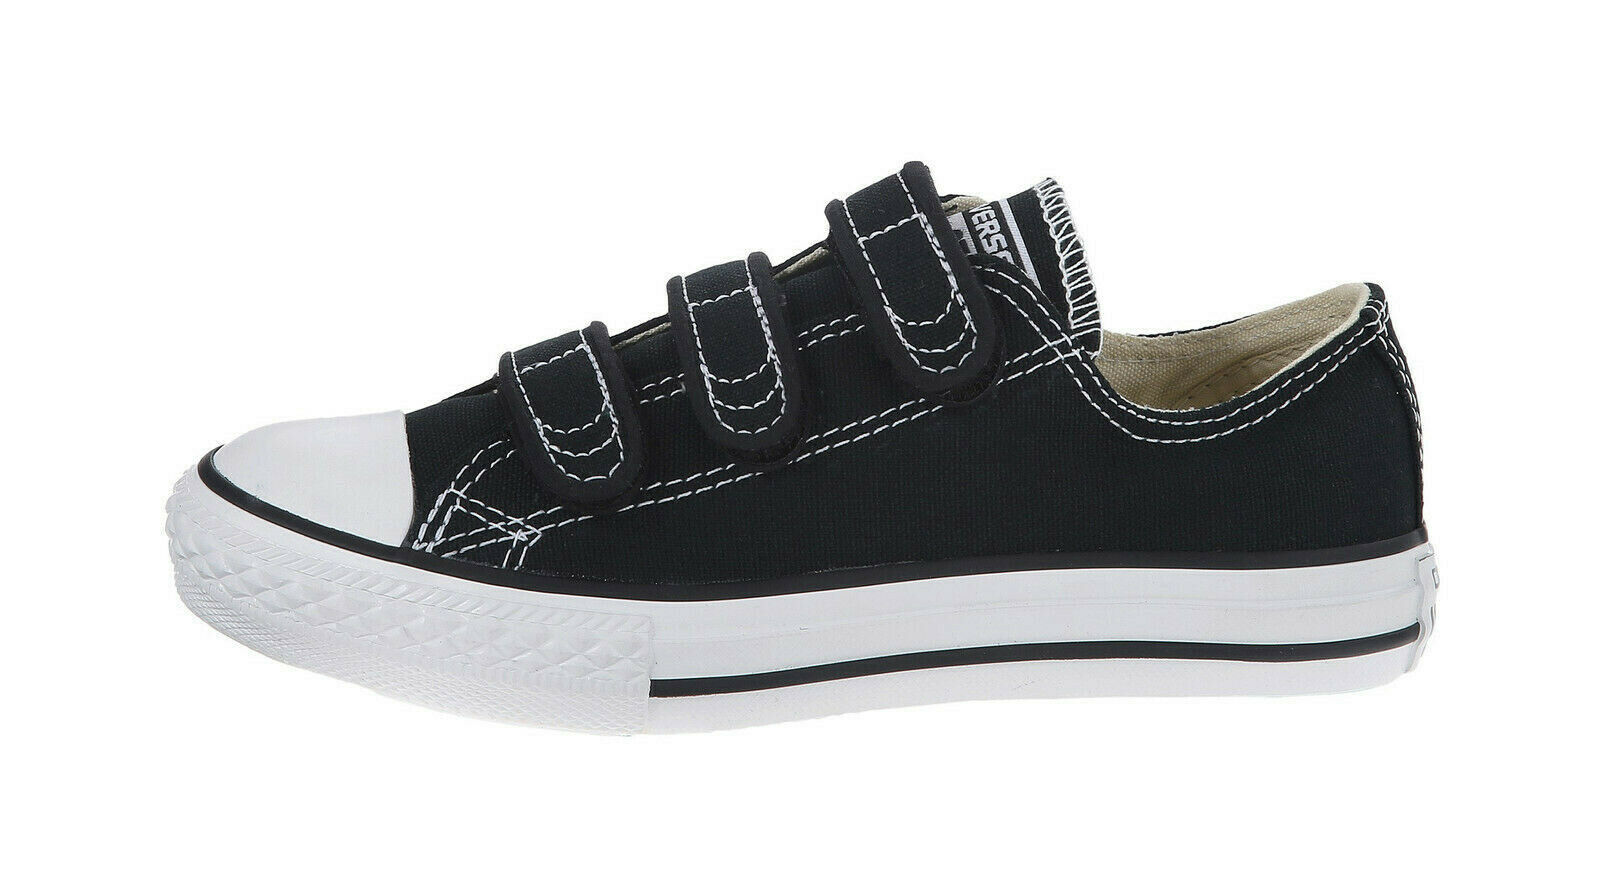 Converse All Star Chuck Taylor Black Shoes Canvas Straps Youth Big Kids Children